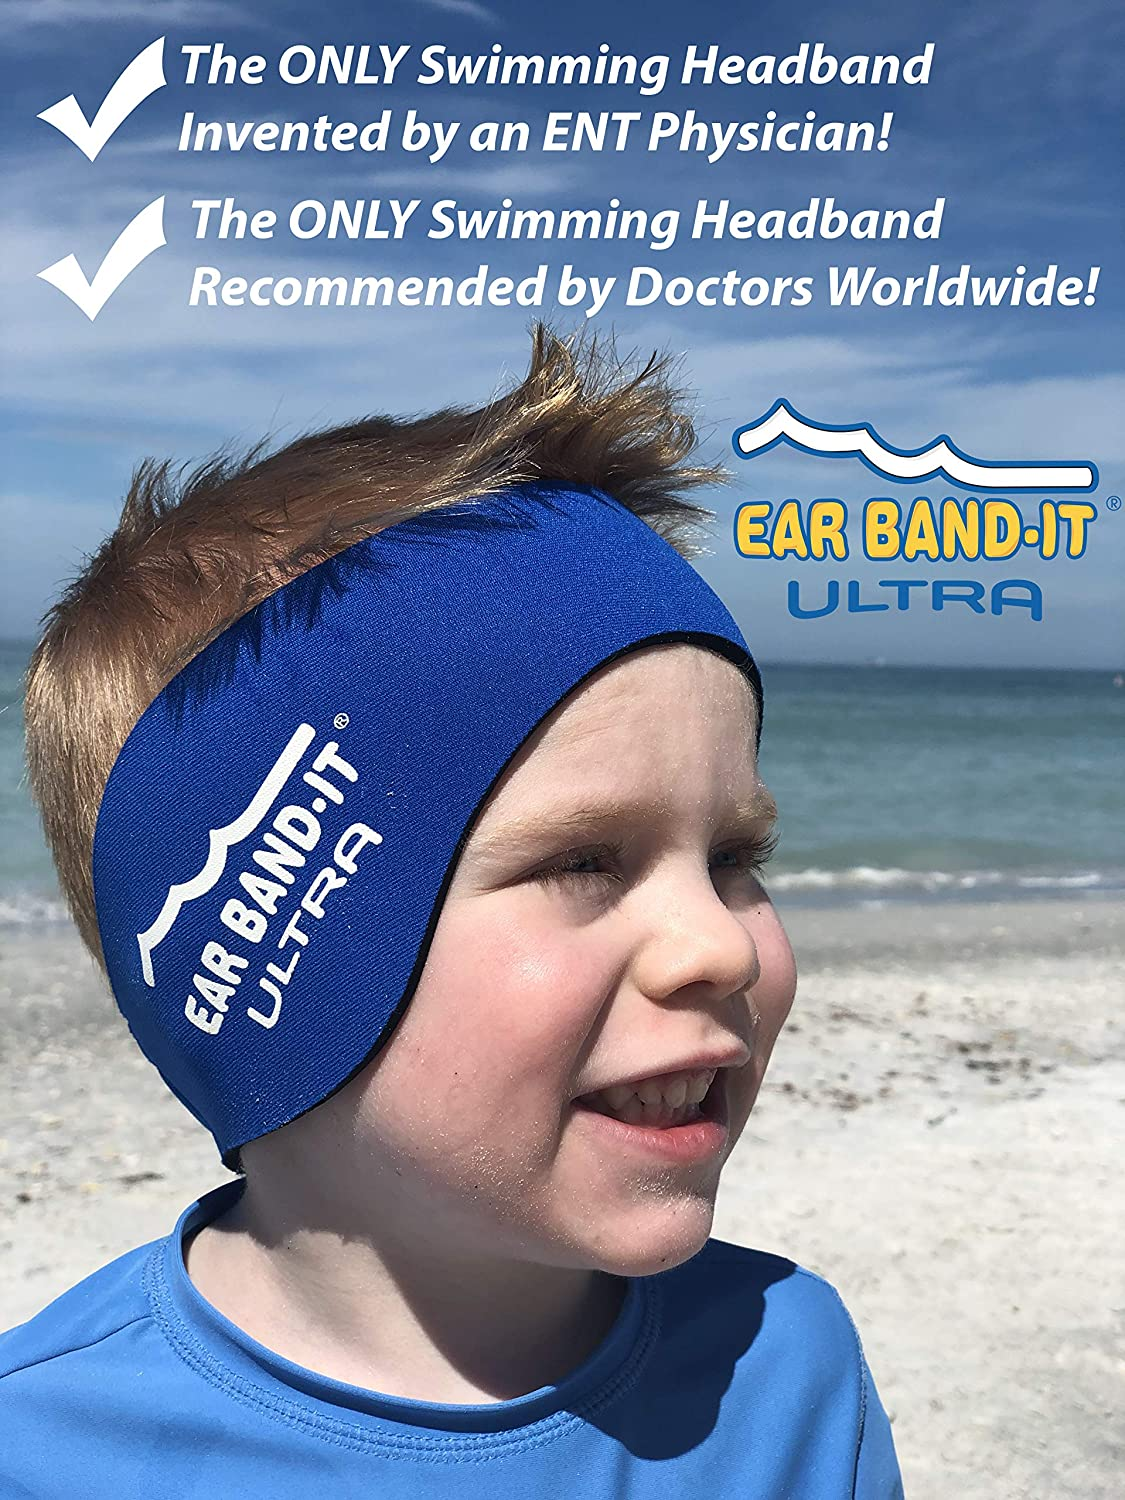 0f58112756c199 Amazon.com : Ear Band-It Ultra Swimming Headband - Best Swimmer's Headband  - Keep Water Out, Hold Earplugs in - Doctor Recommended - Secure Ear Plugs  ...